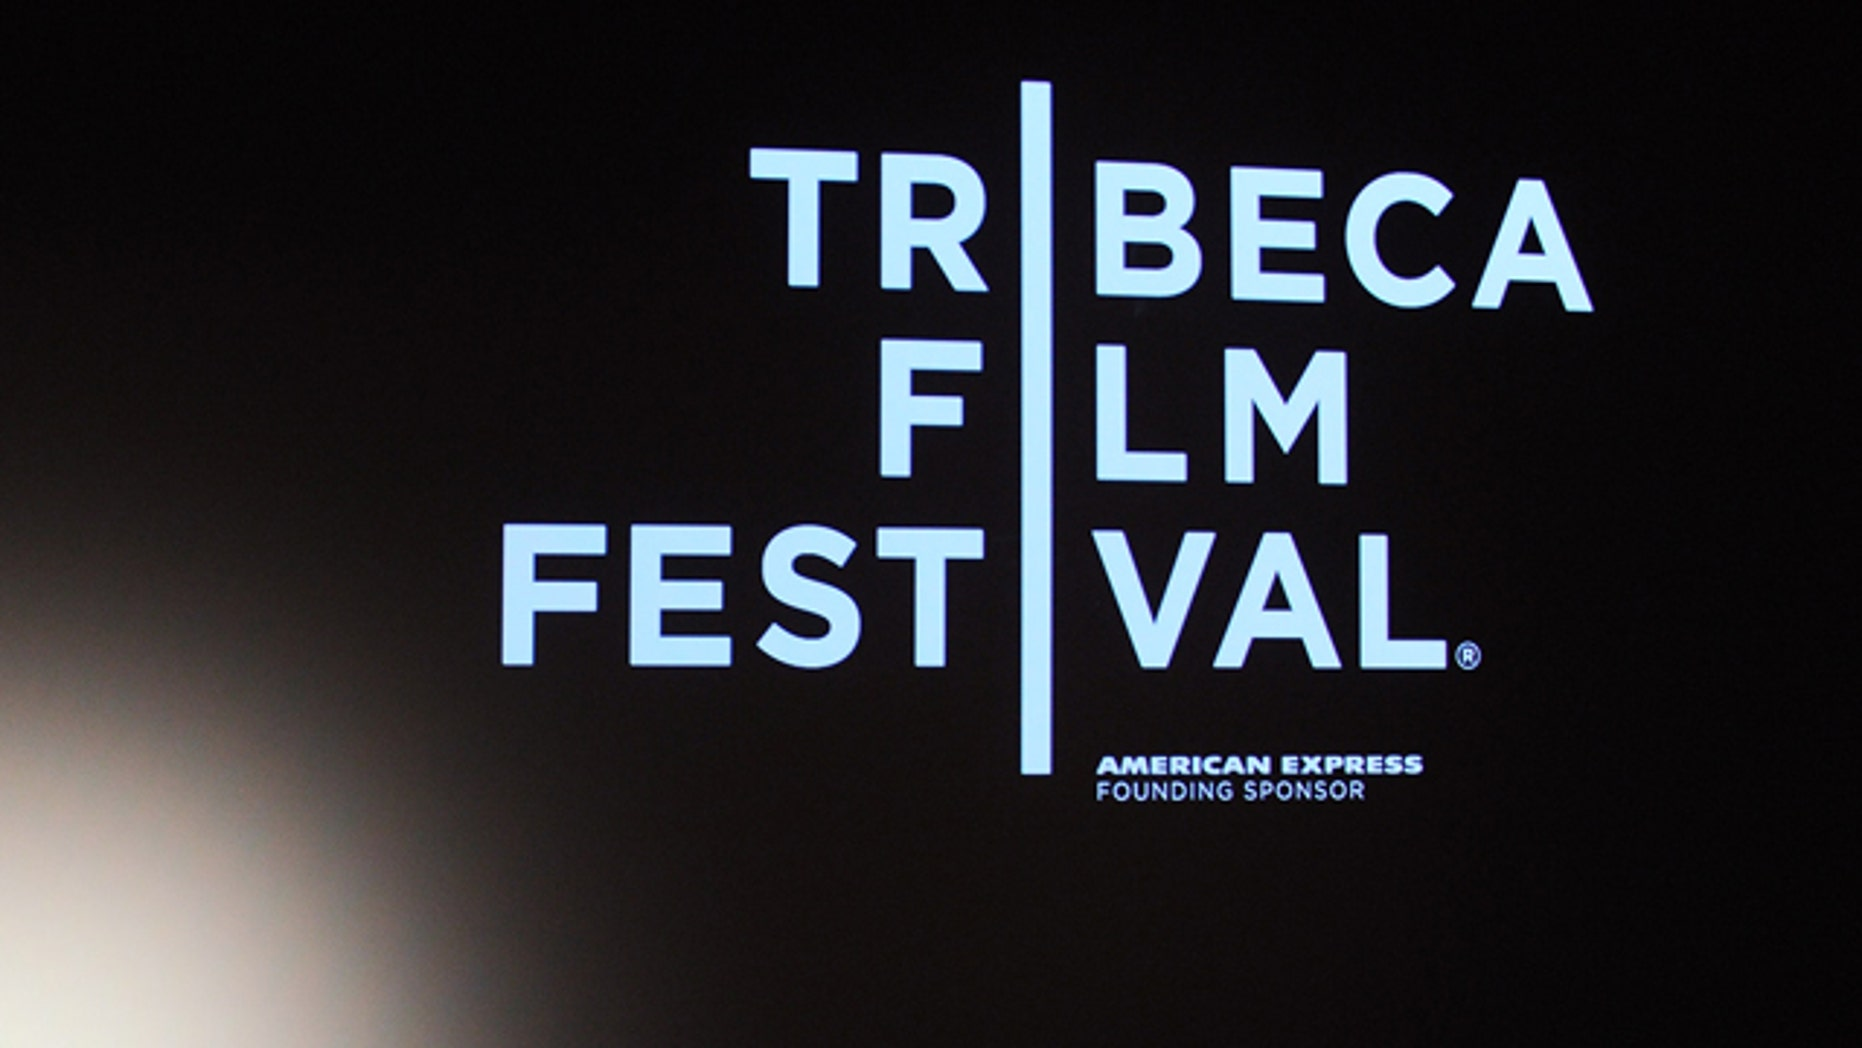 NEW YORK, NY - APRIL 22:  Tribeca Film Festival Executive Director Nancy Schafer introduces Tribeca Talks Directors Series during the 2012 Tribeca Film Festival at the Borough of Manhattan Community  College on April 22, 2012 in New York City.  (Photo by Craig Barritt/Getty Images)